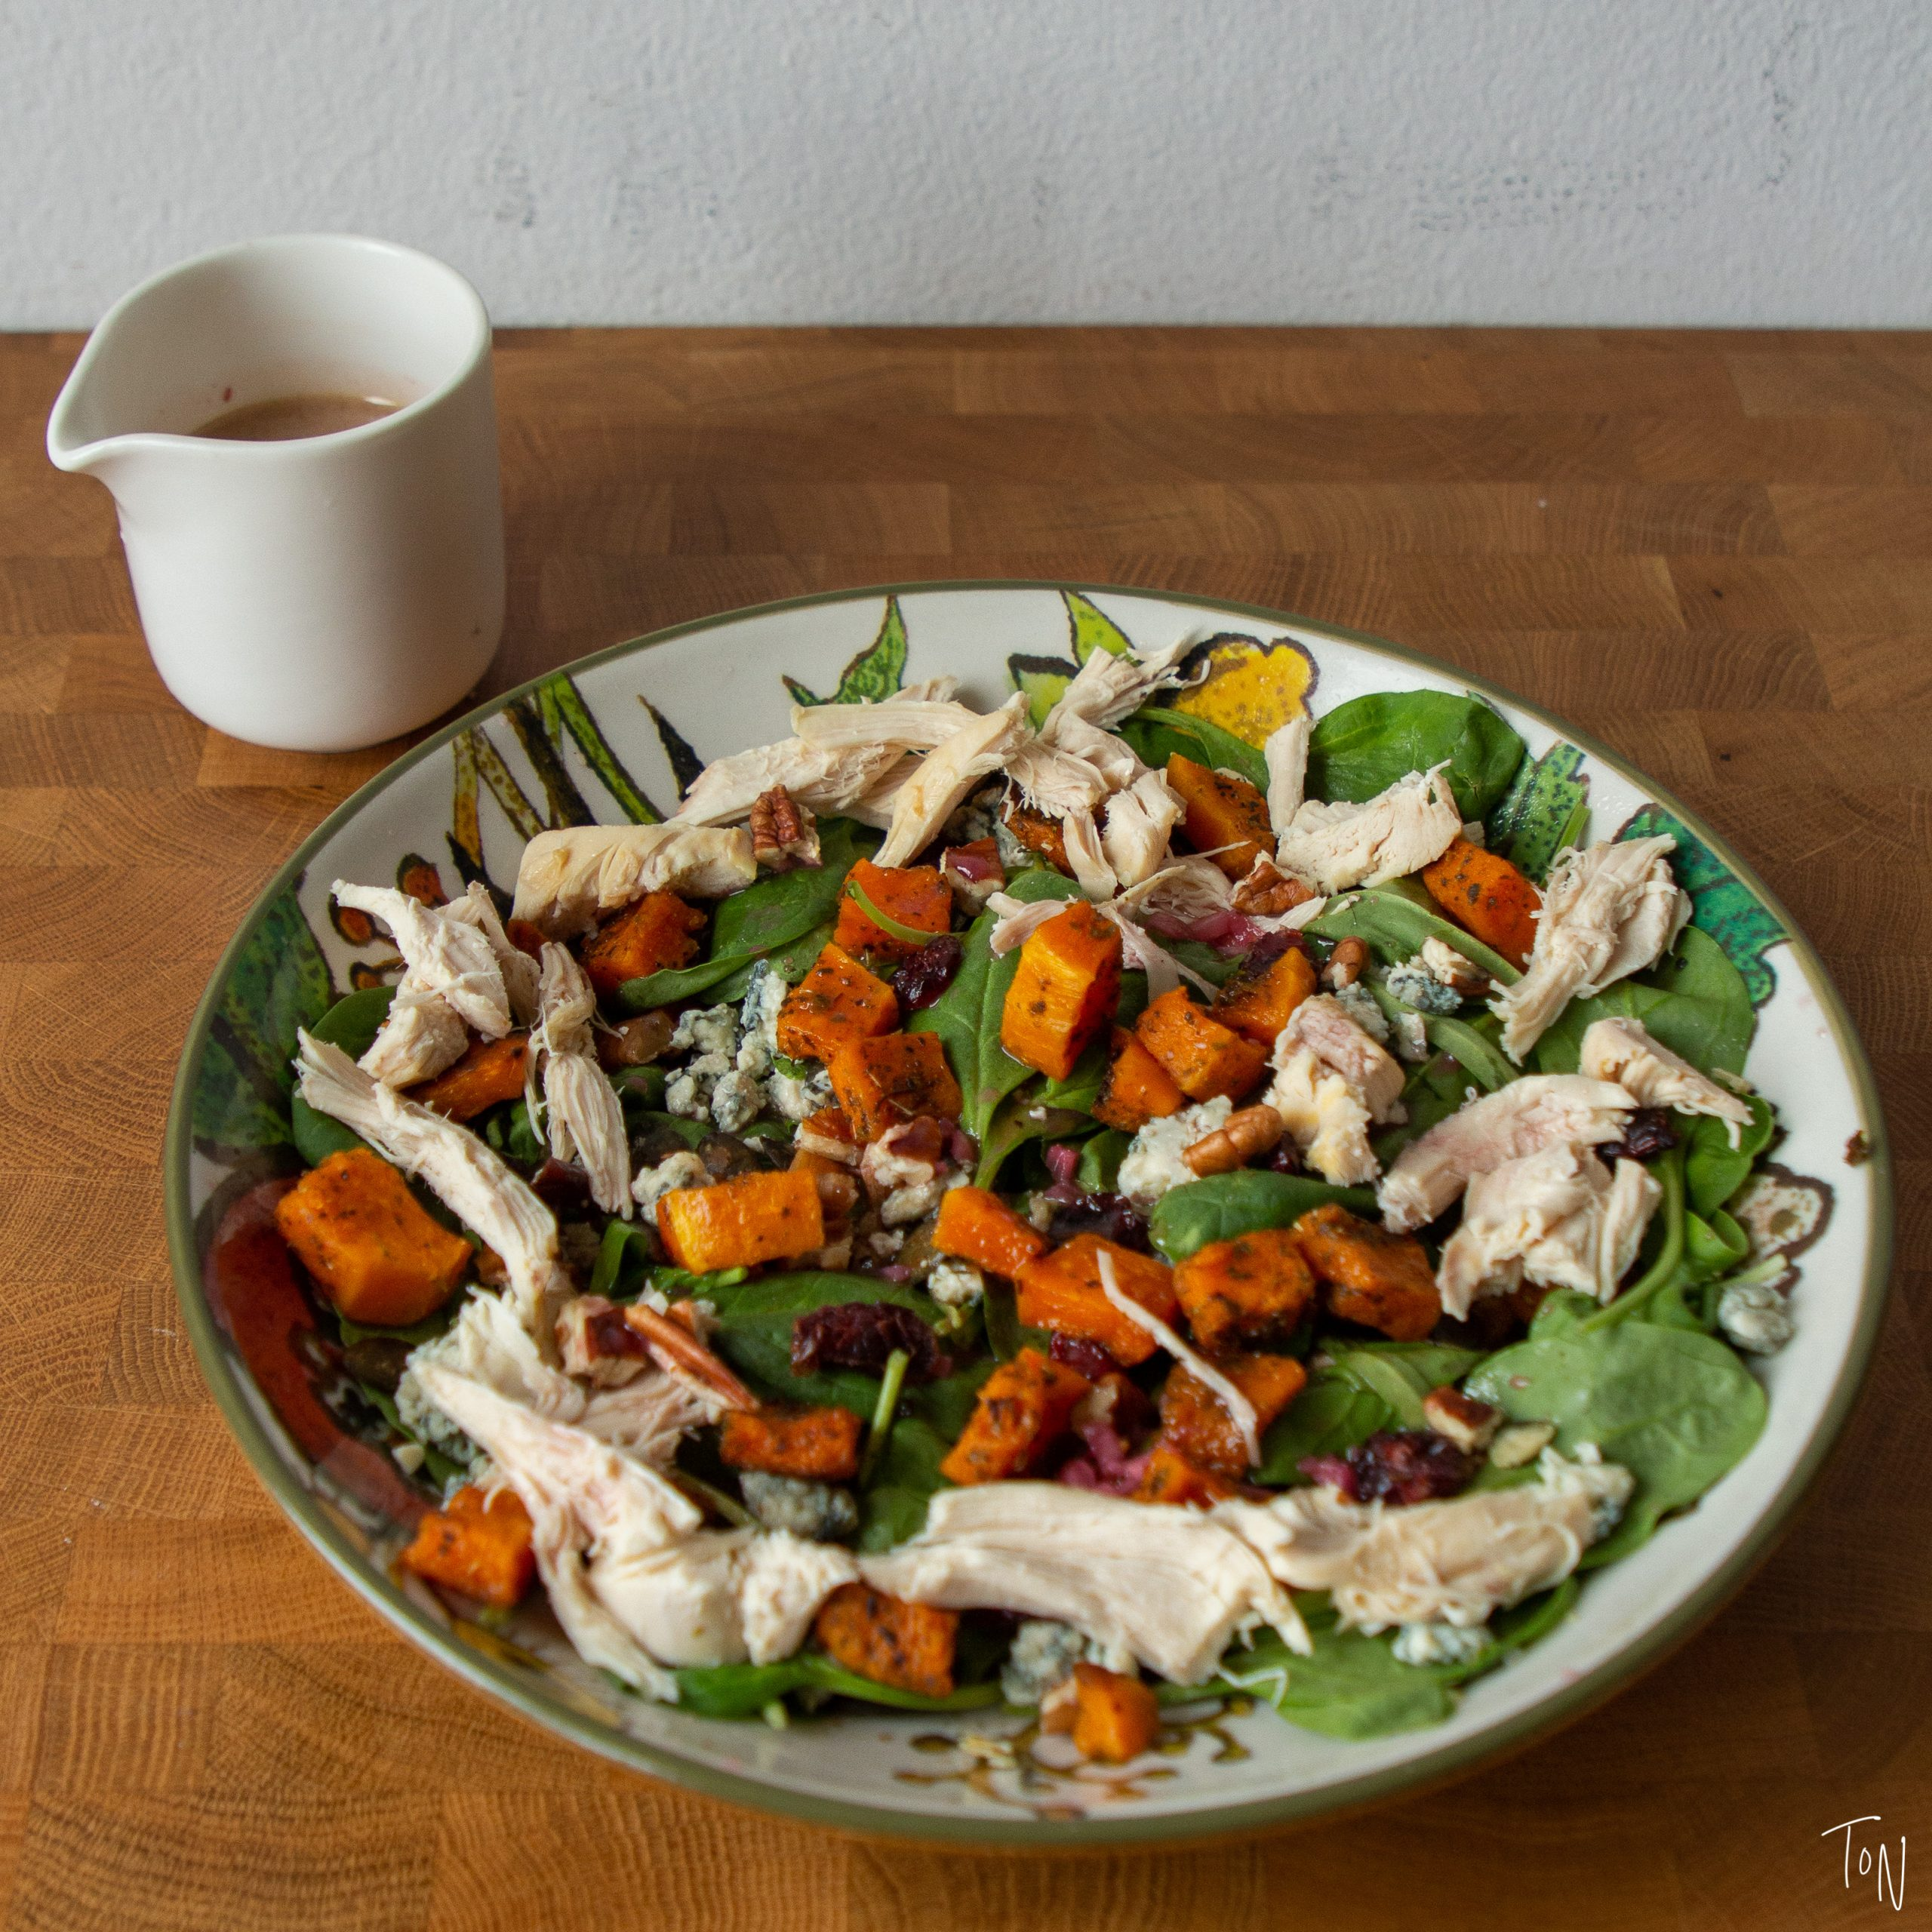 Tastes like Thanksgiving, but easy enough for weekday lunches!